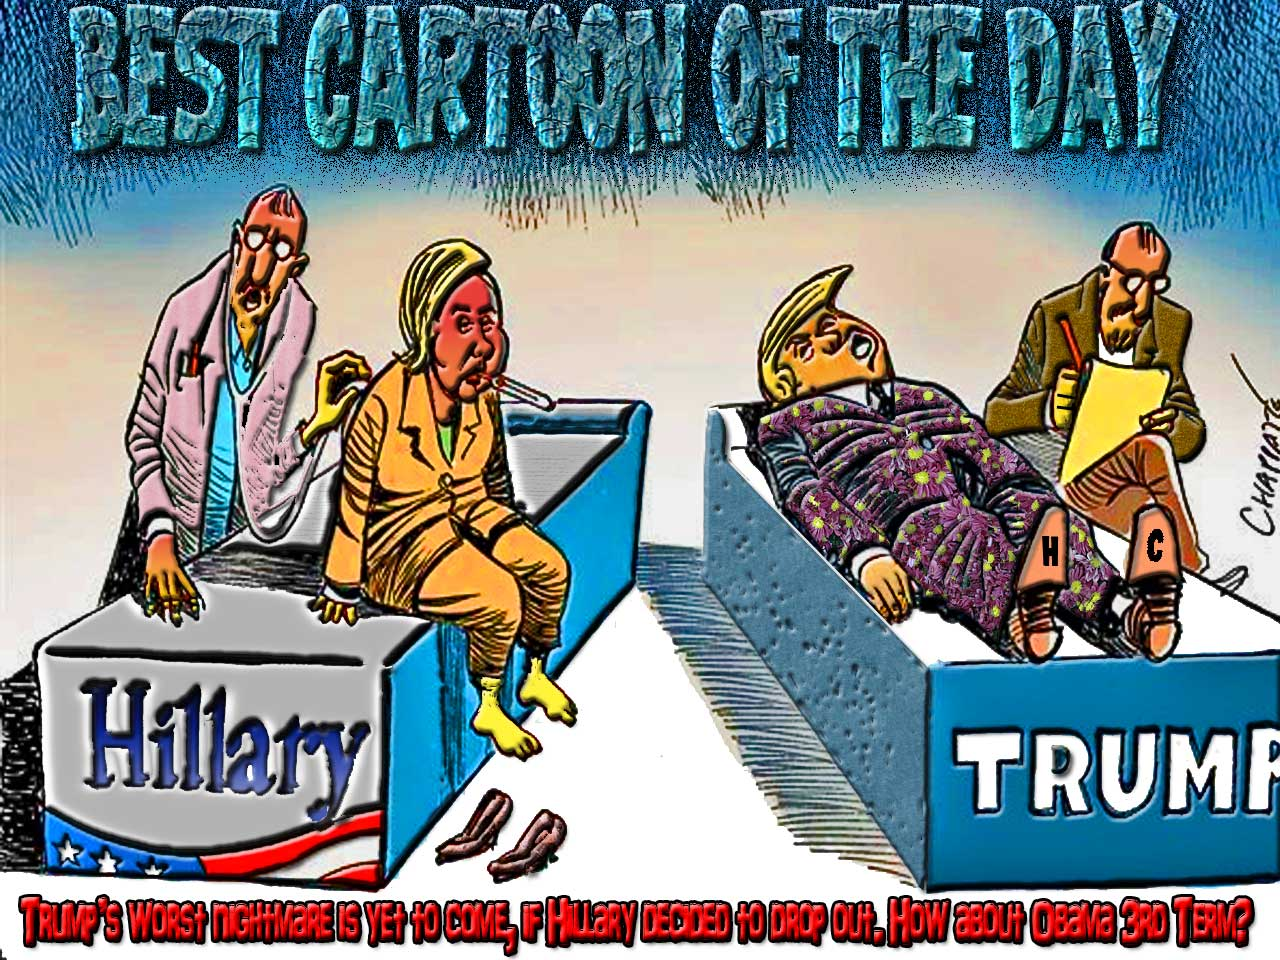 BEST CARTOON OF THE DAY: Trump's worst nightmare is yet to come, if Hillary decided to drop out. How about Obama 3rd Term?